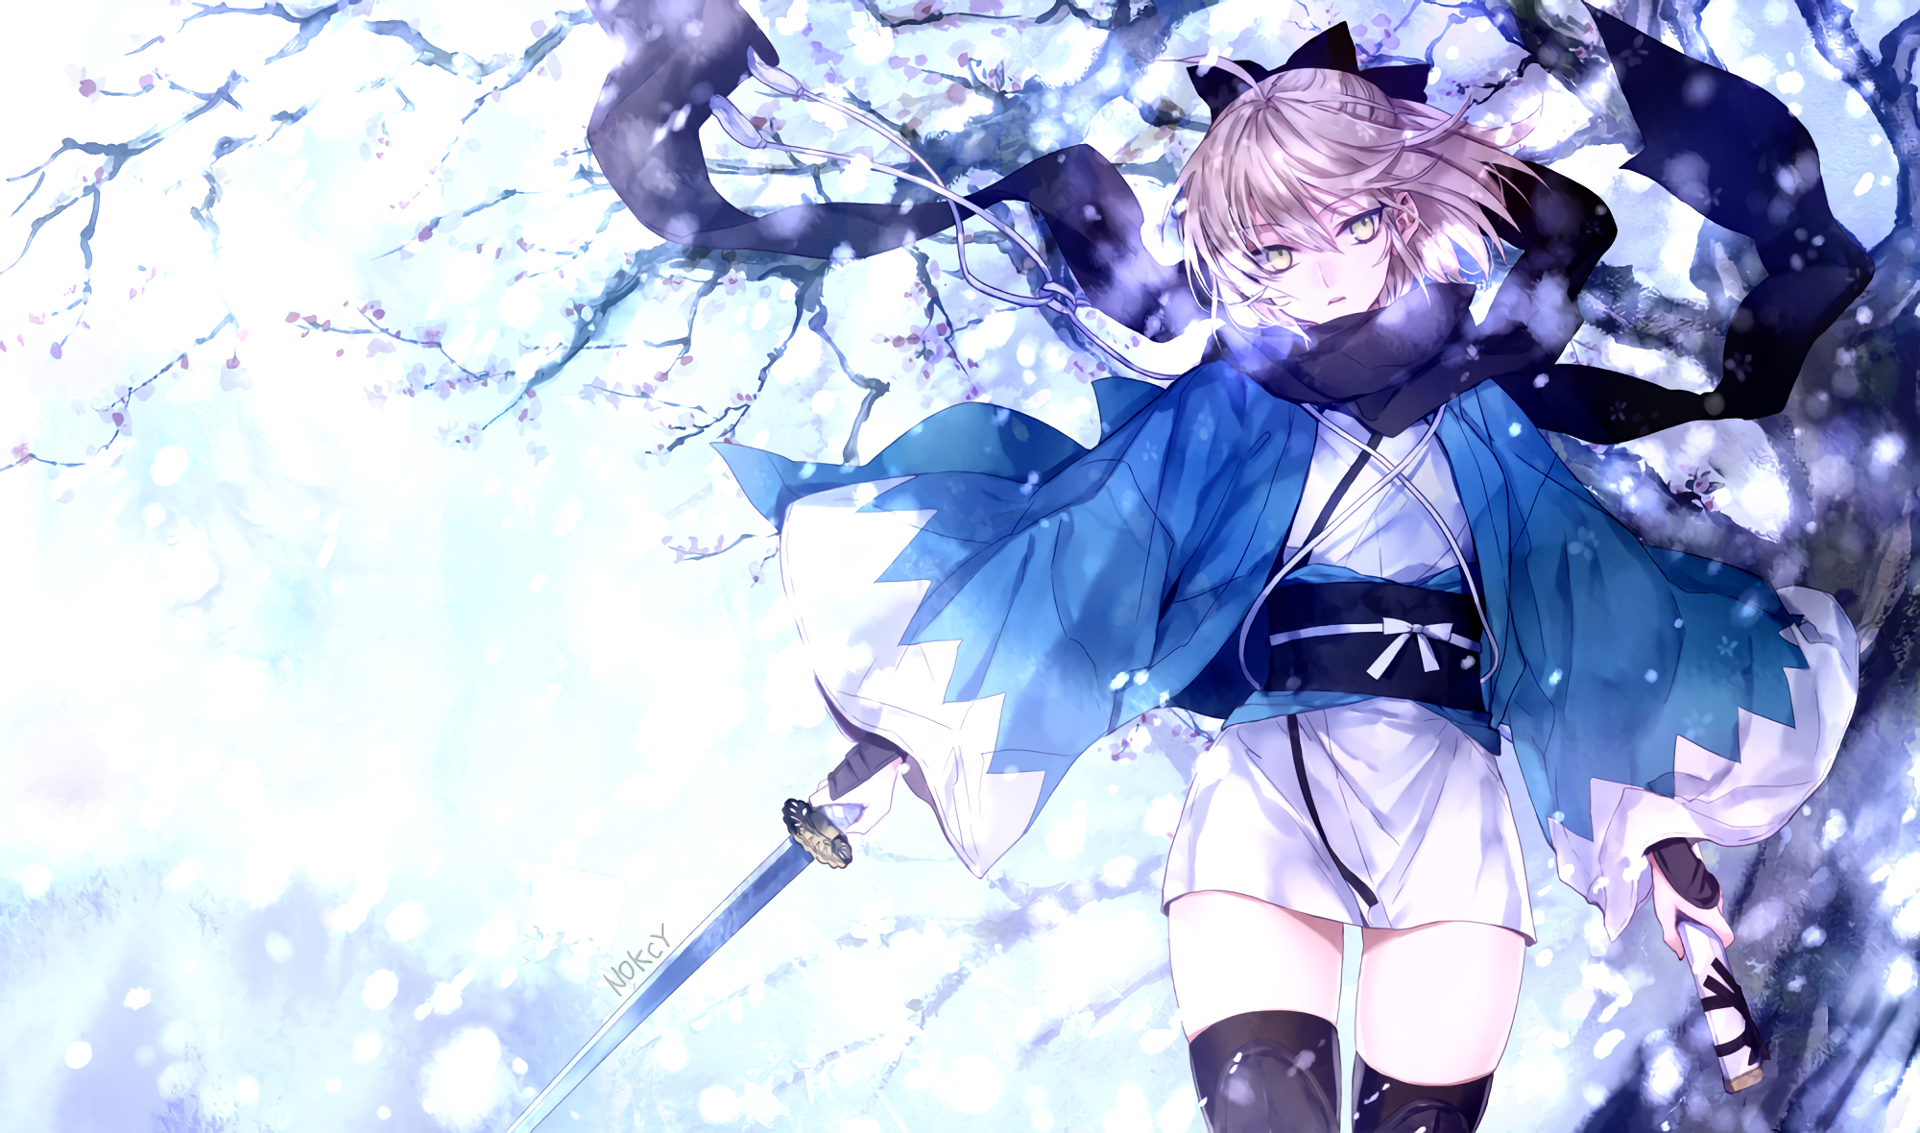 Fate Grand Order Wallpapers Top Free Fate Grand Order Backgrounds Wallpaperaccess